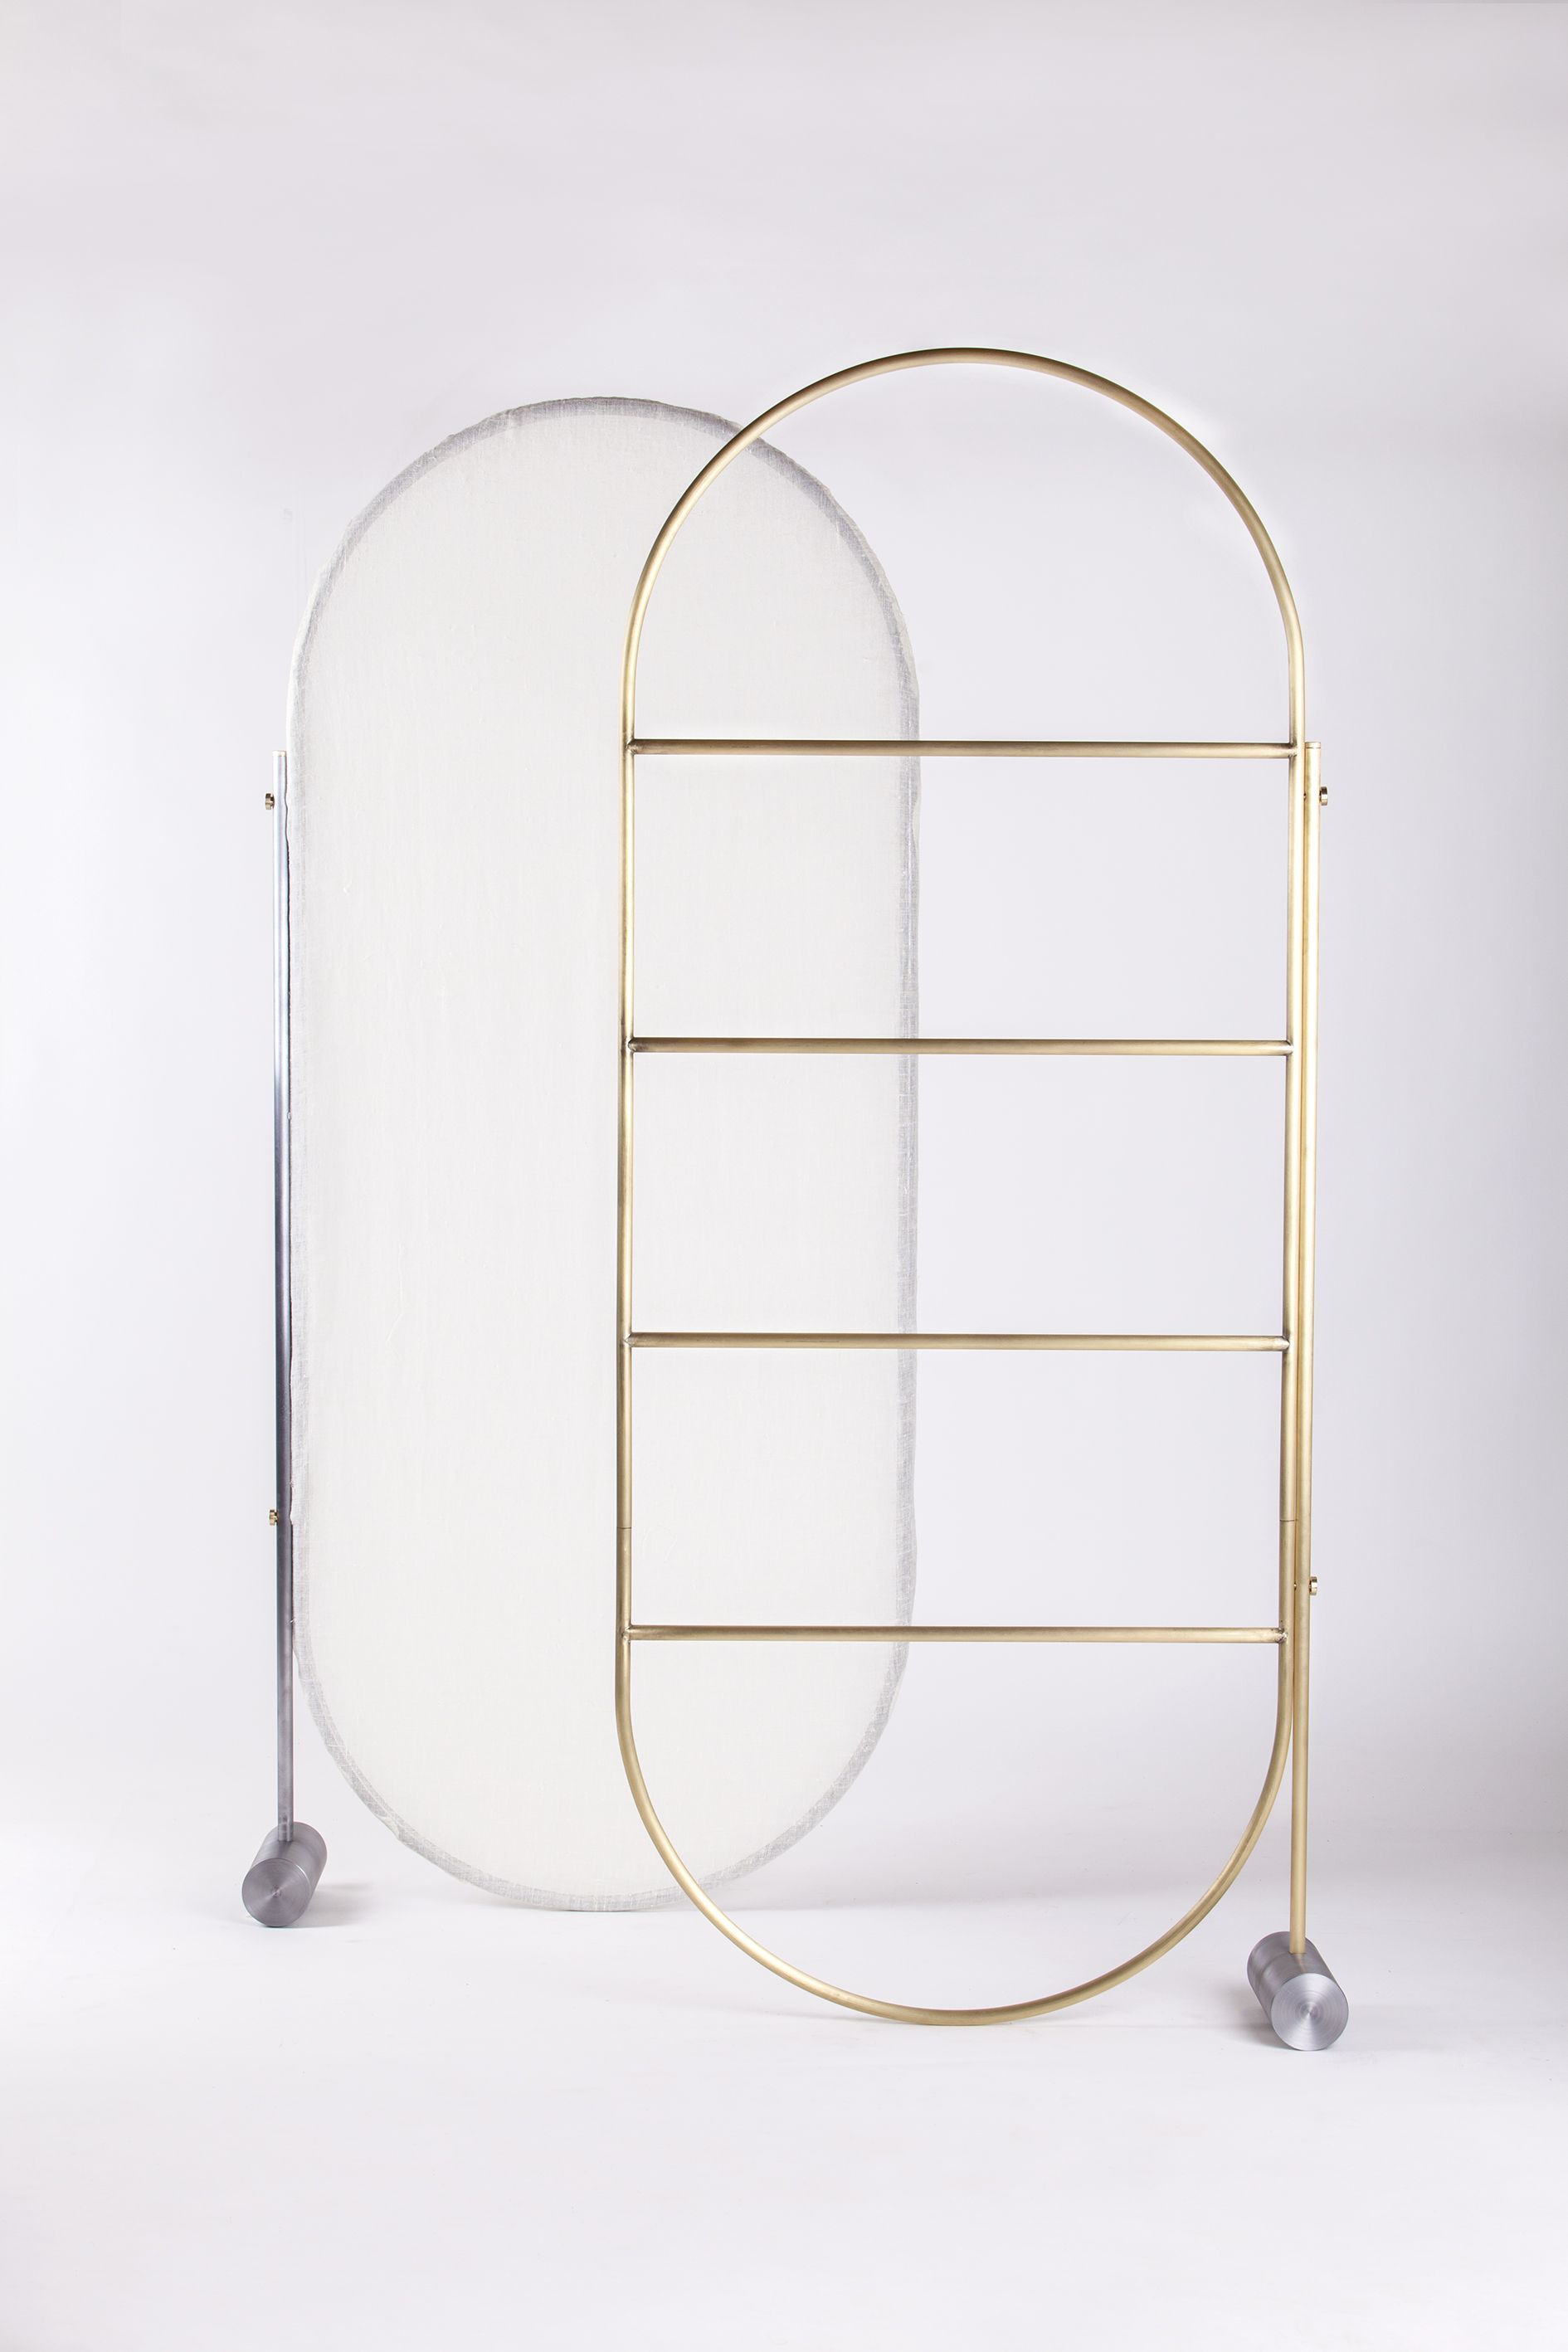 Separè (2015) by Revesz + Tatangelo is a multi-use space divider, centered around a vertical metal frame kept upright via cylindrical anchor weight at its base. A semi-transparent natural fabric covering the frame creates light and flexible division of spaces while open frame option with horizontal divisions allows for a multi-use rack.  Finishes : natural brass, natural iron.  // Manufacturer : Mingardo